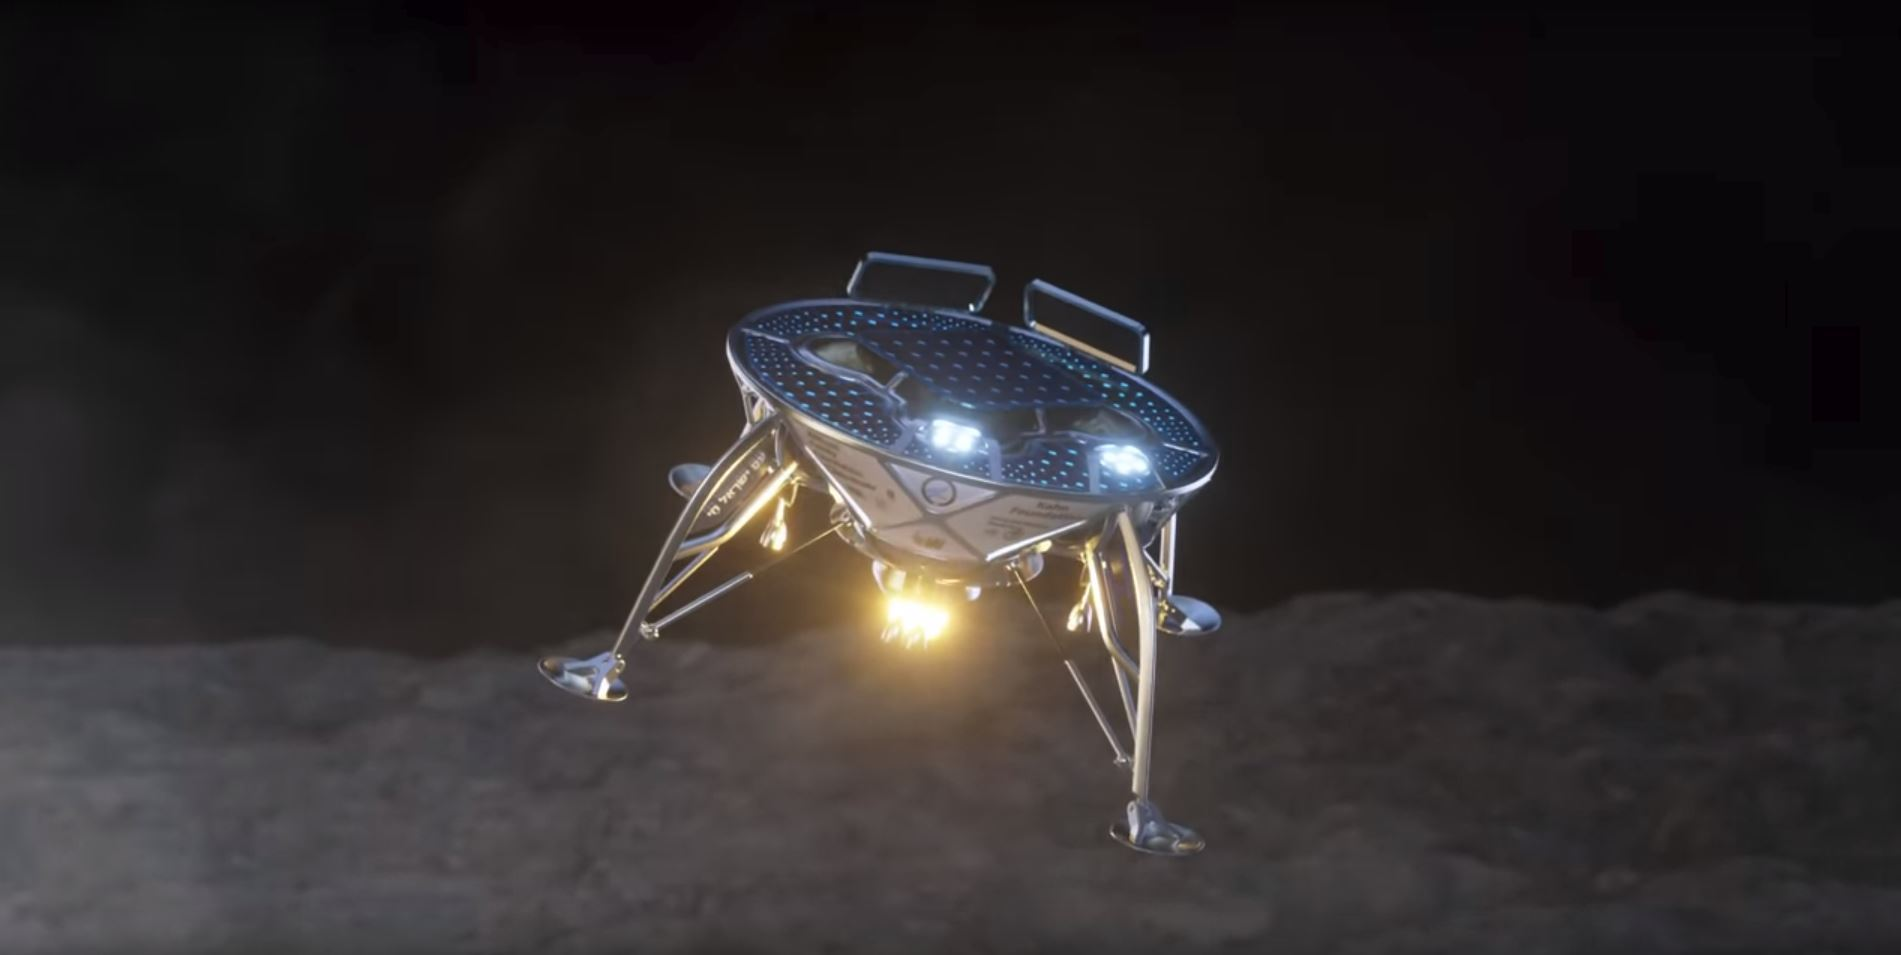 Private Israeli company sent February 19 to the moon lander